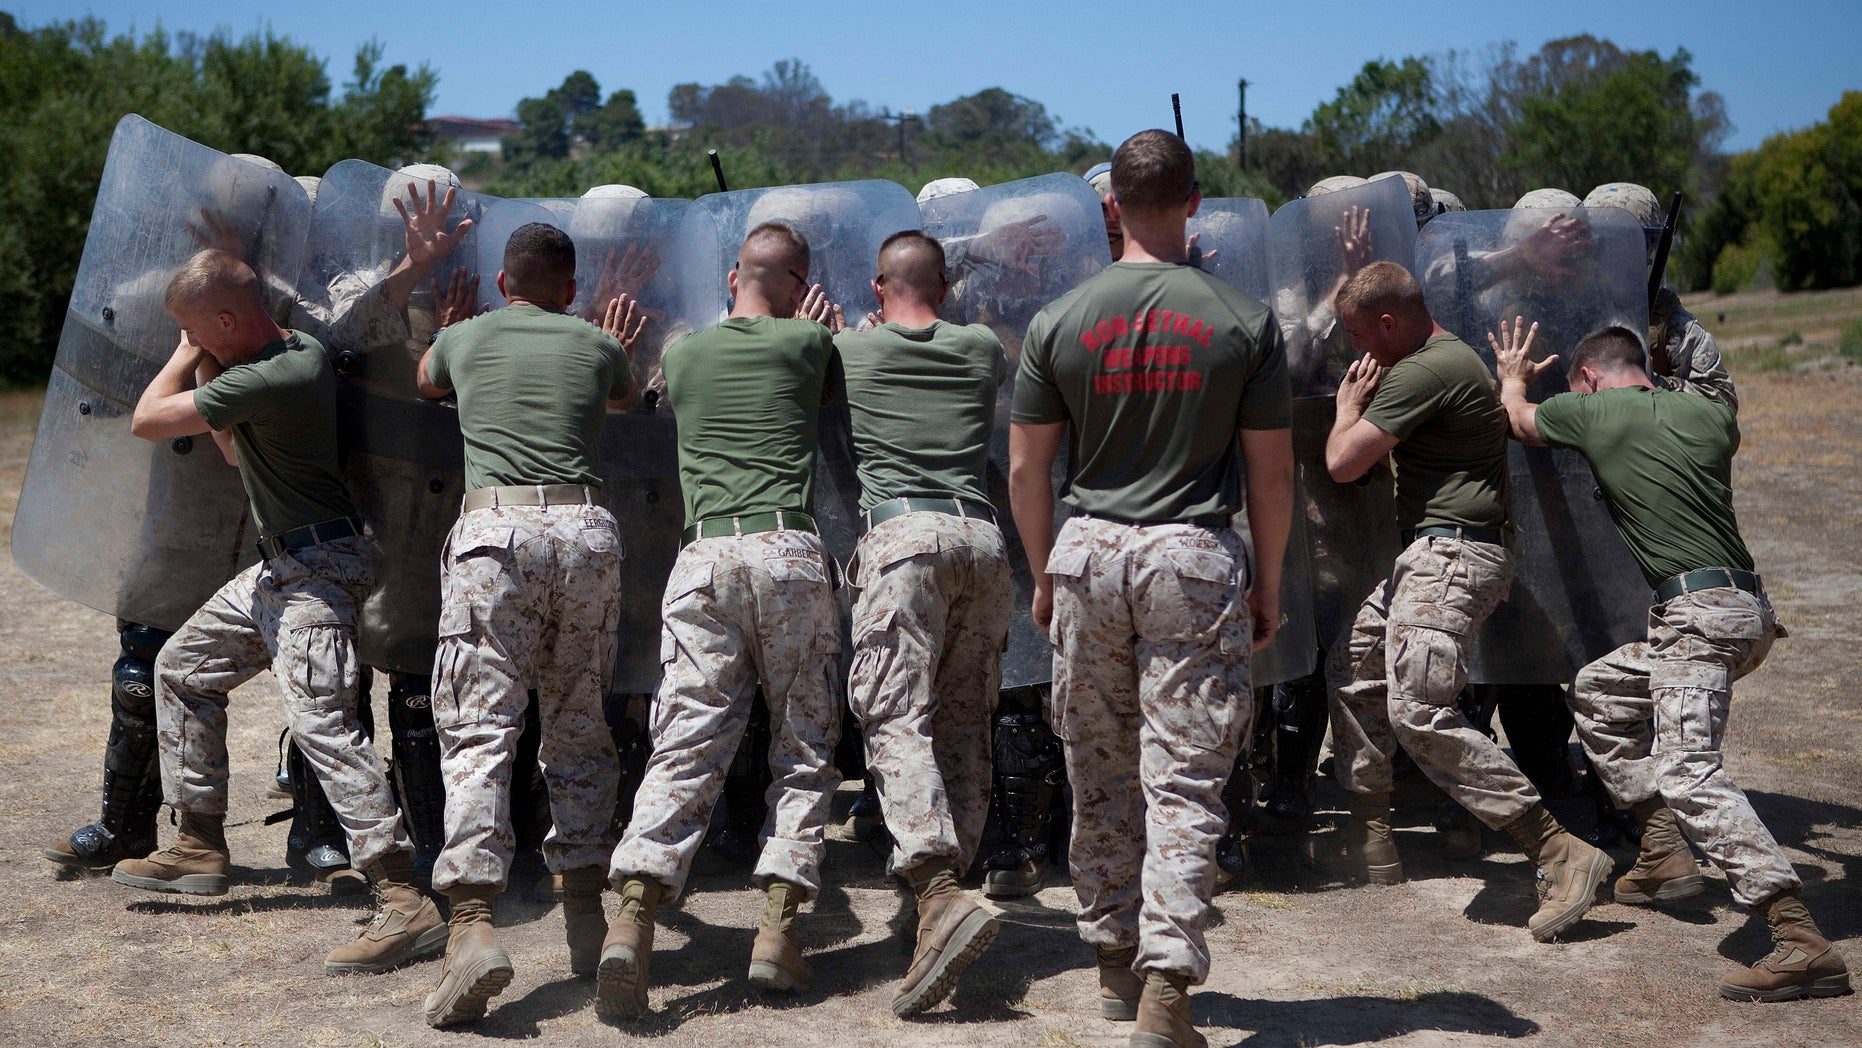 July 19, 2012: Marines in Bravo Company of the 1st Law Enforcement Battalion practice non-lethal crowd control techniques at the Marine Corps base at Camp Pendleton, Calif.